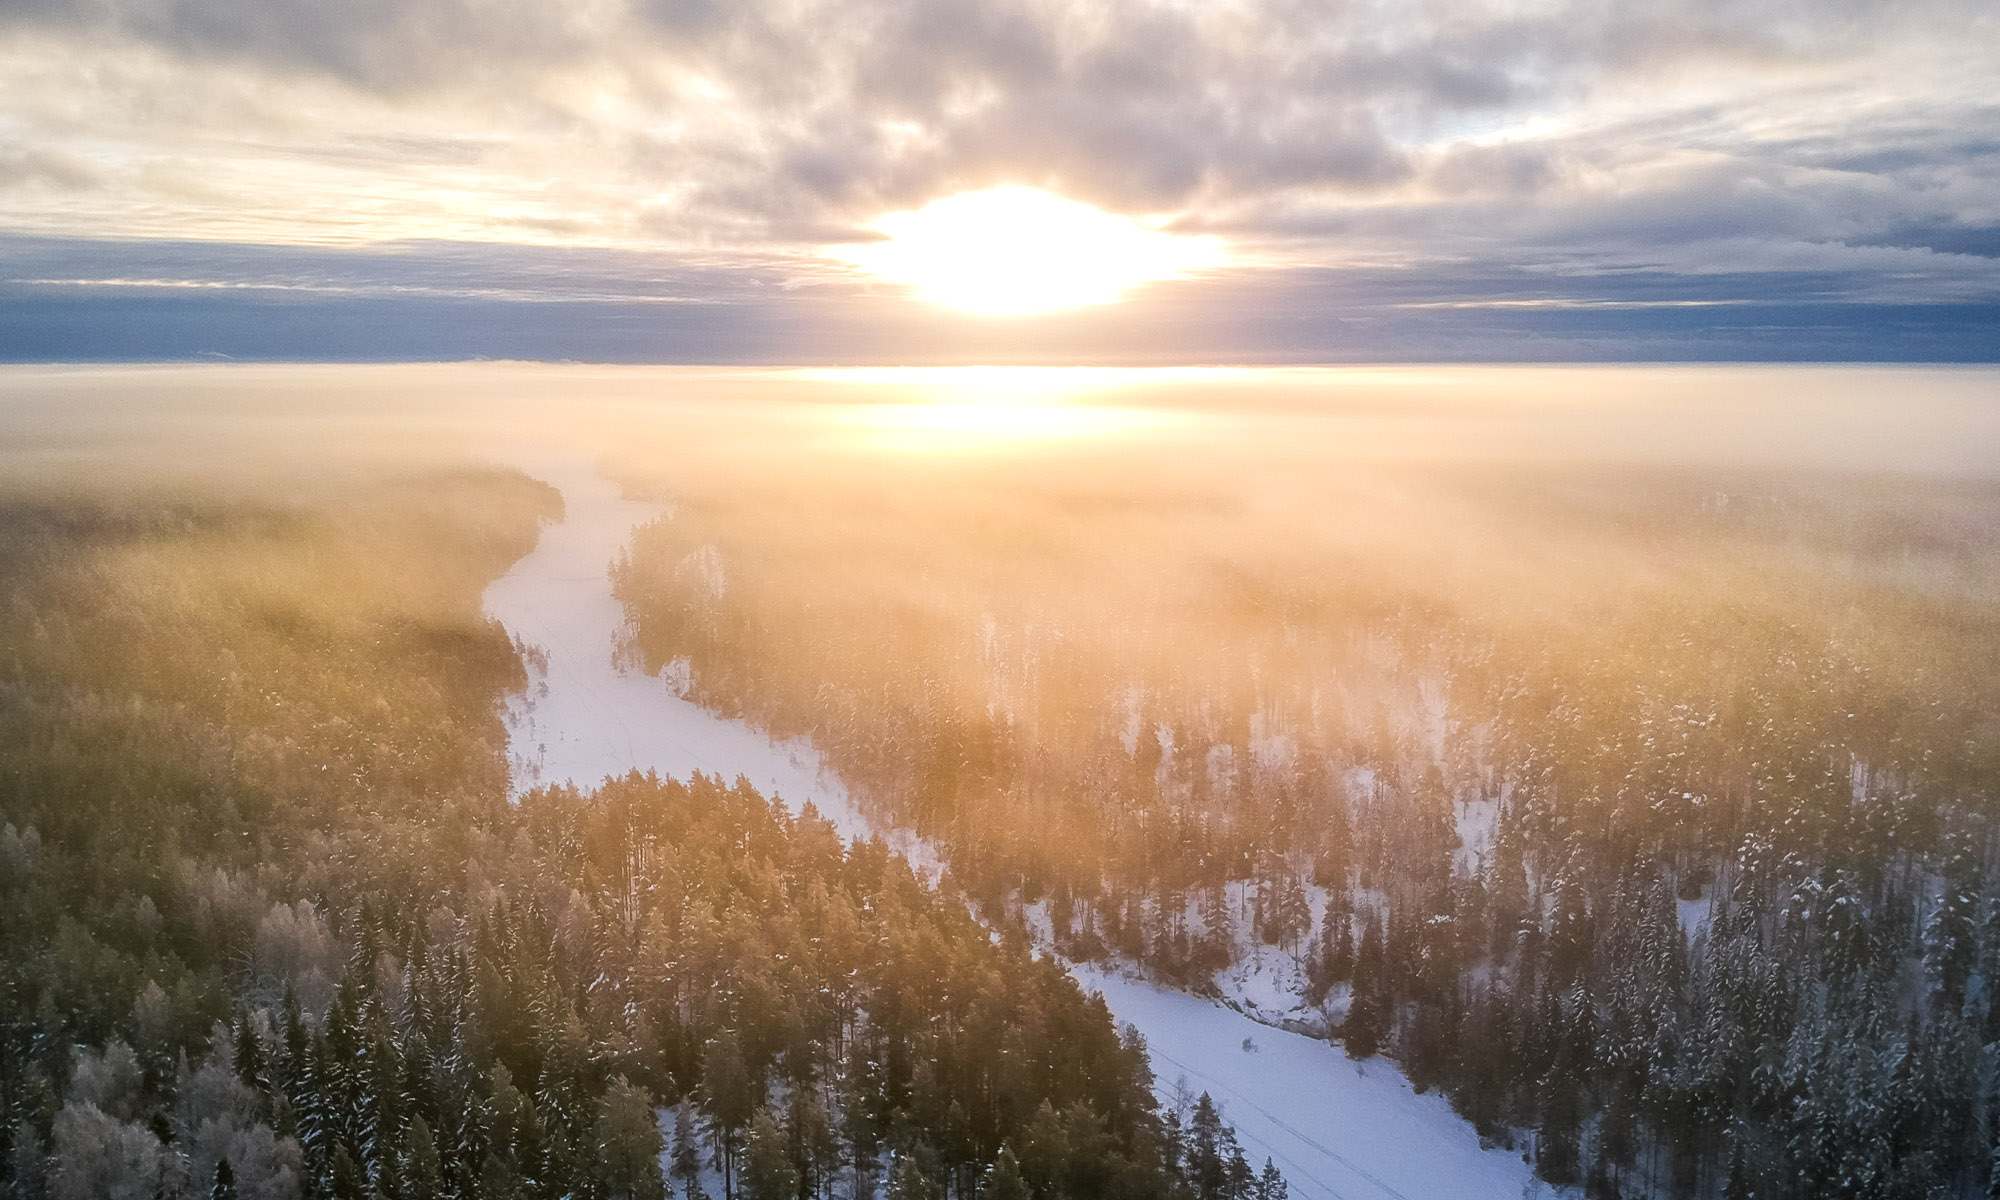 Nuuksio National Park in winter. Stunning winter view over Nuuksio National Park from a drone. Finnish nature near Helsinki, Finland.